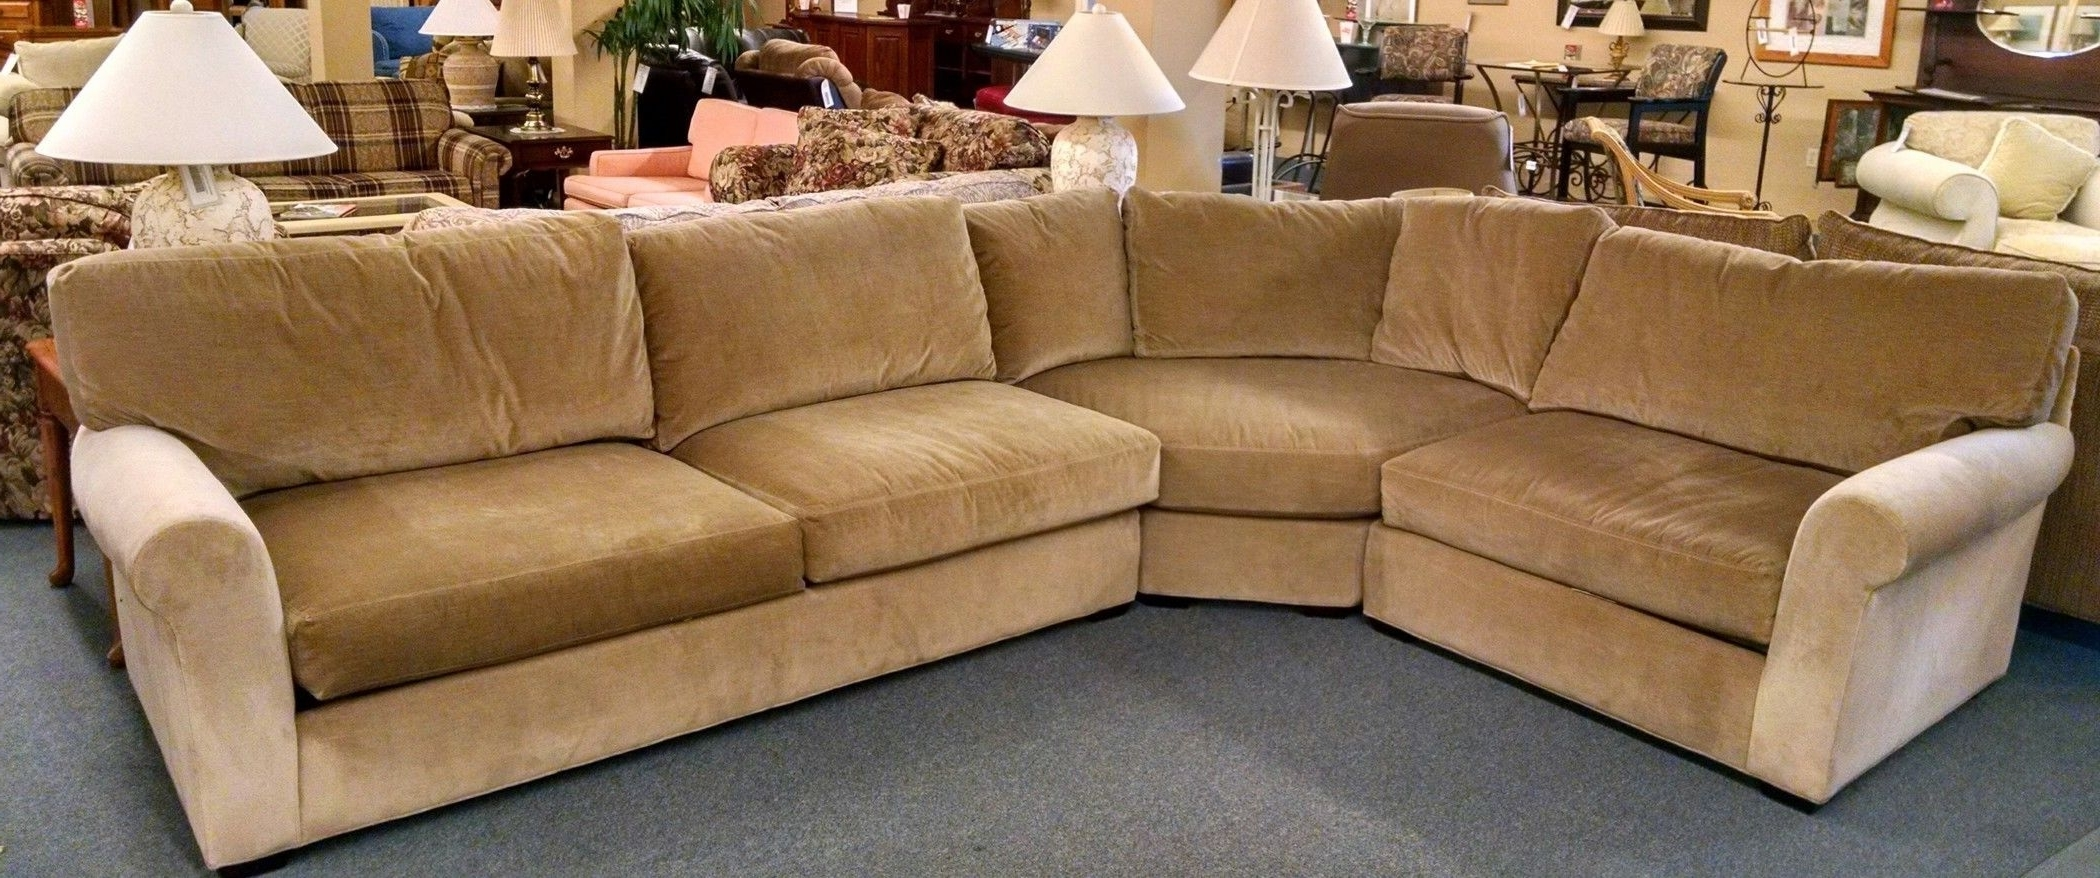 Lee Industries Sectional Sofa (View 12 of 20)